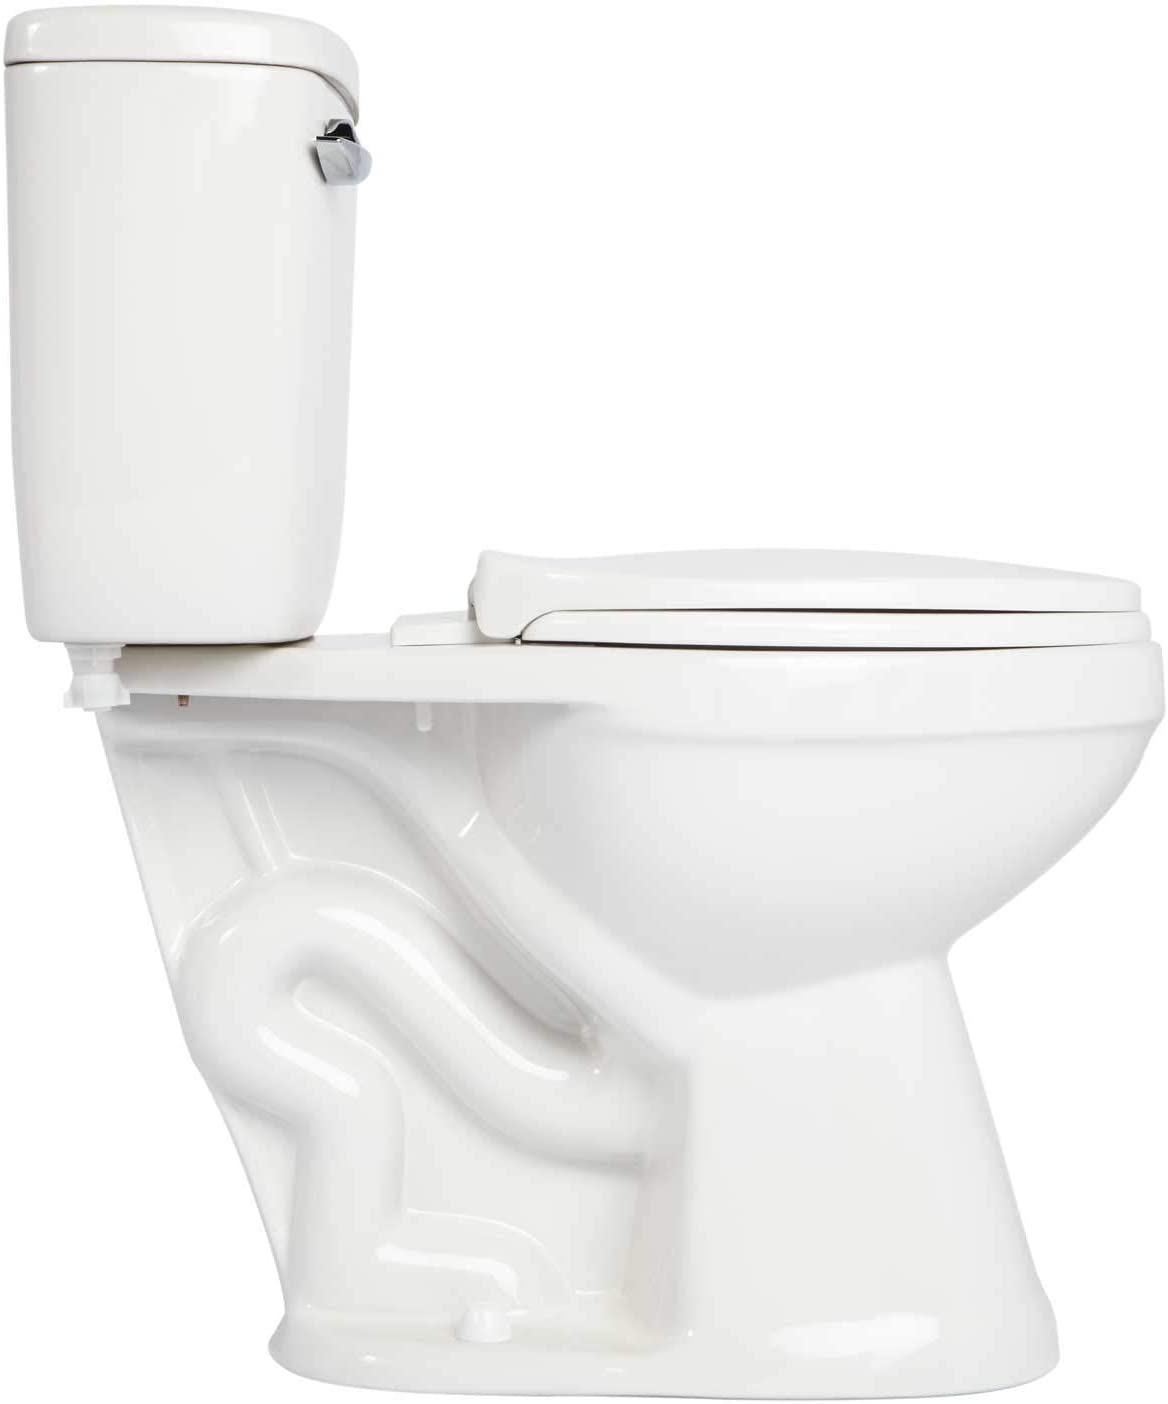 18 inch high toilets